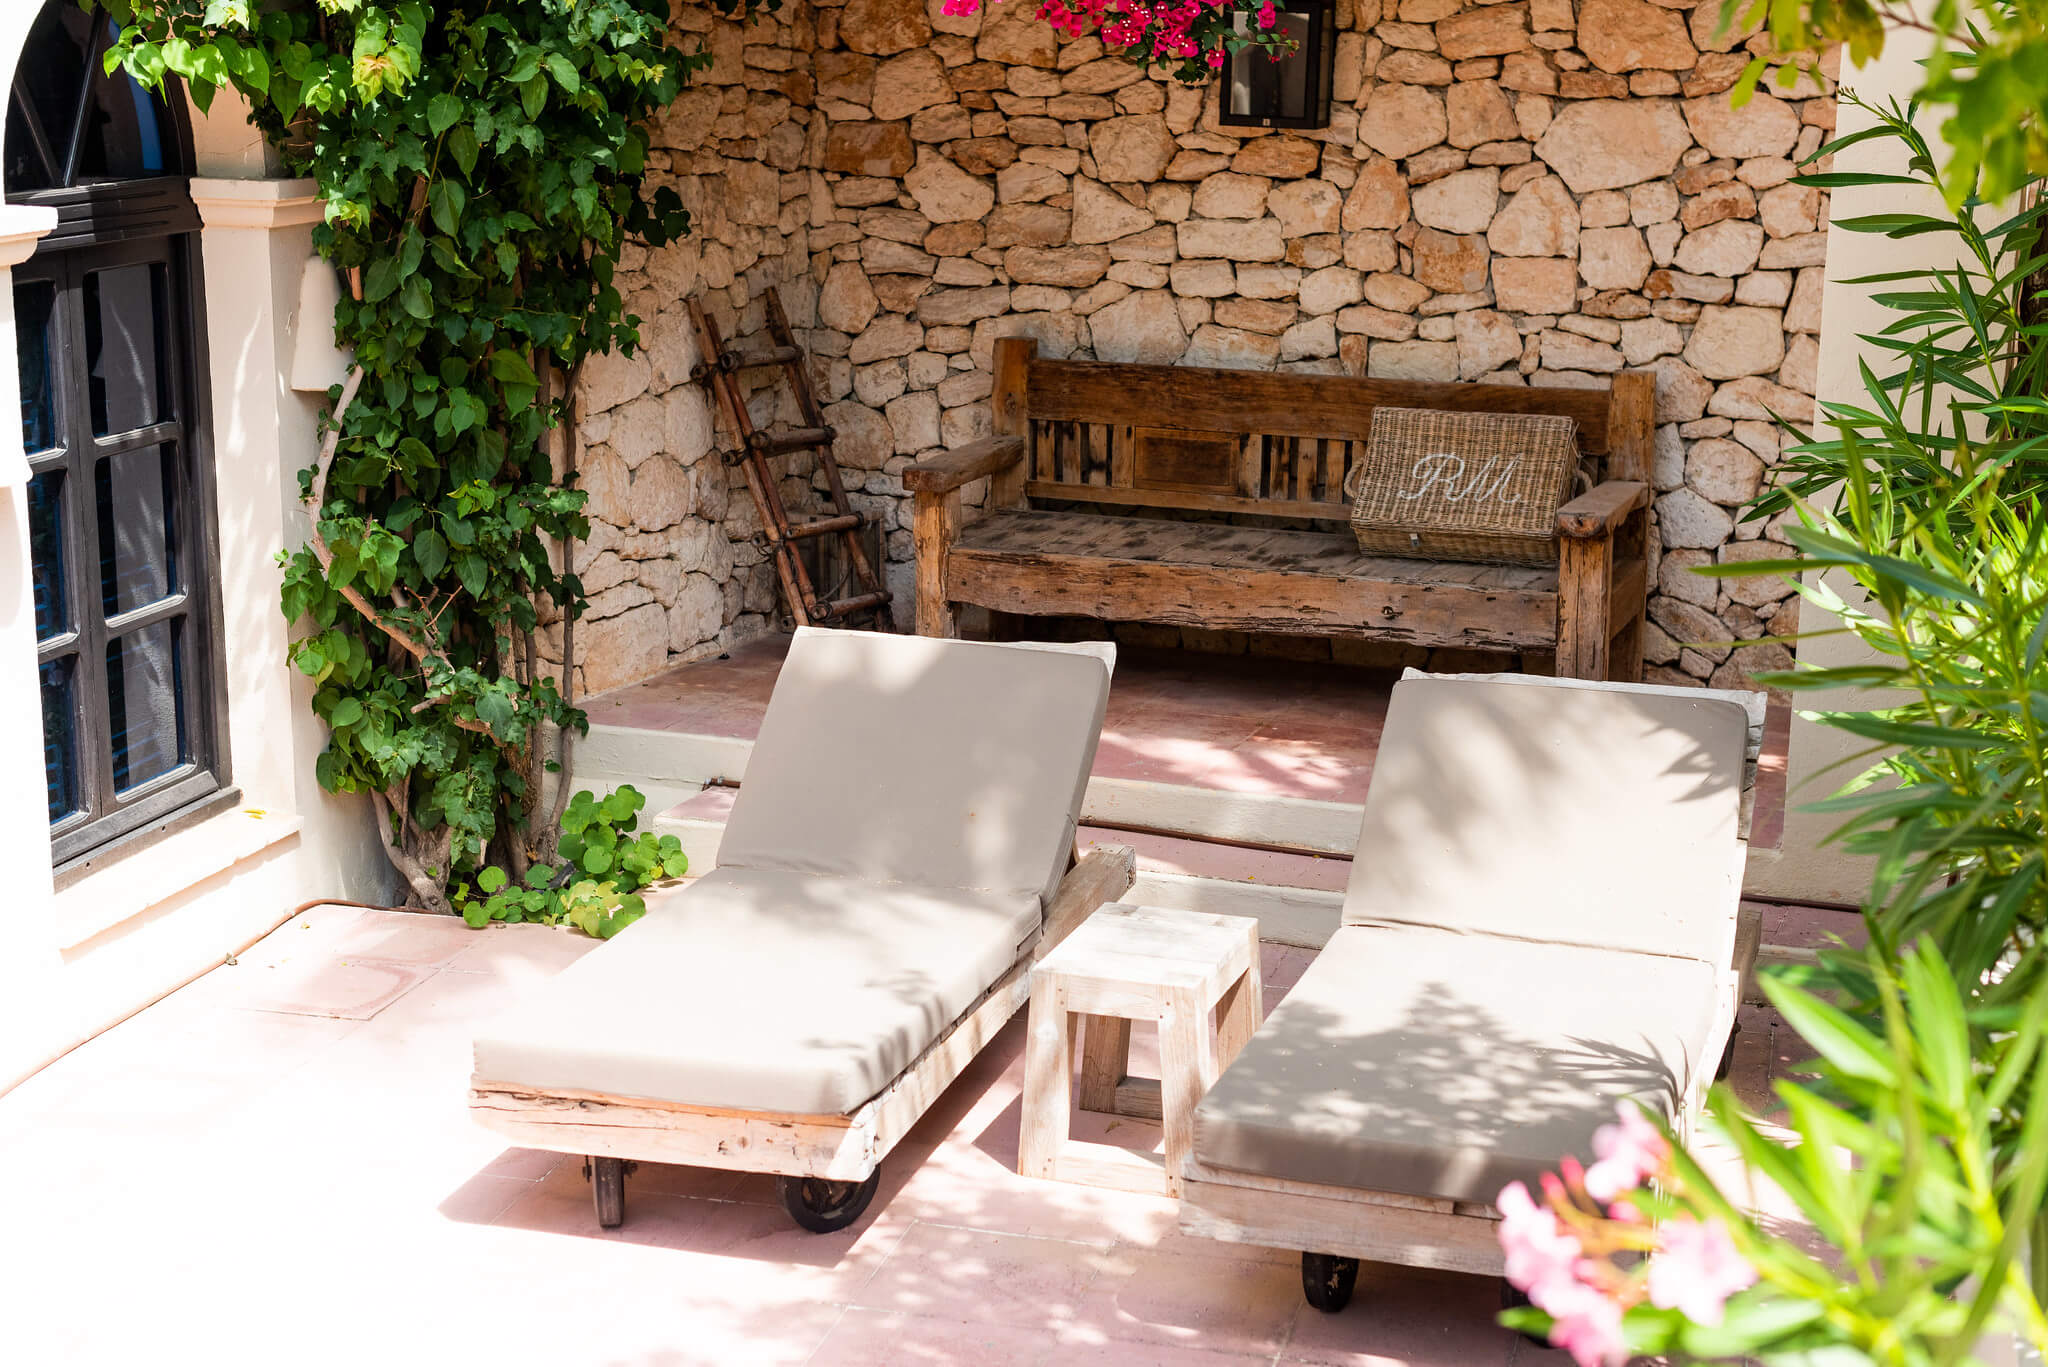 https://www.white-ibiza.com/wp-content/uploads/2020/05/white-ibiza-villas-can-riviere-exterior-sun-loungers-1.jpg